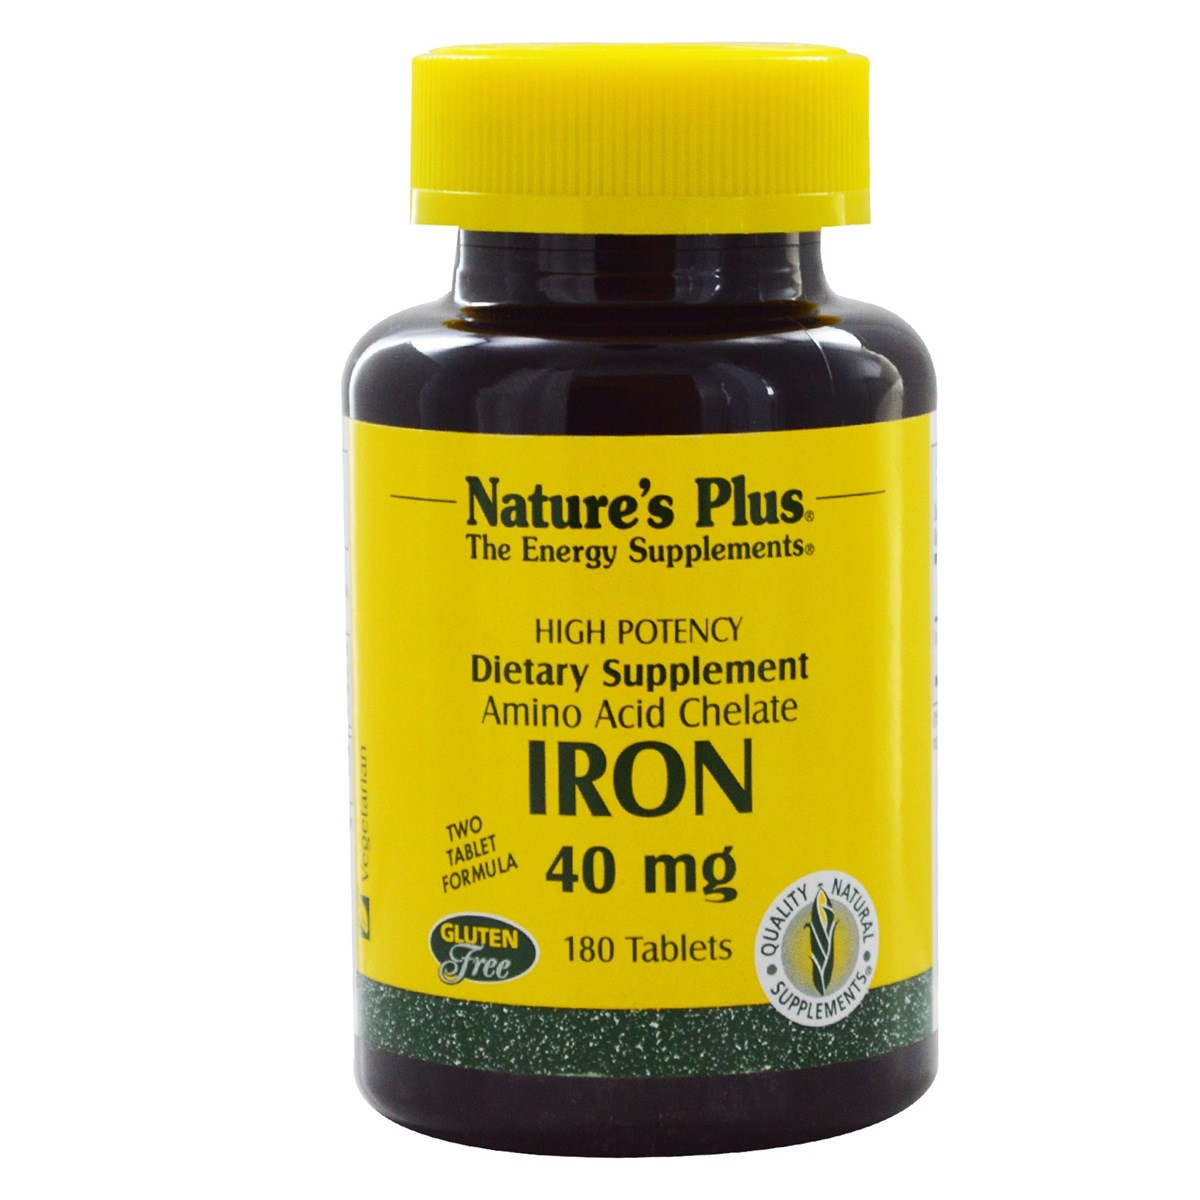 Natures Plus Iron 40 mg Tablets